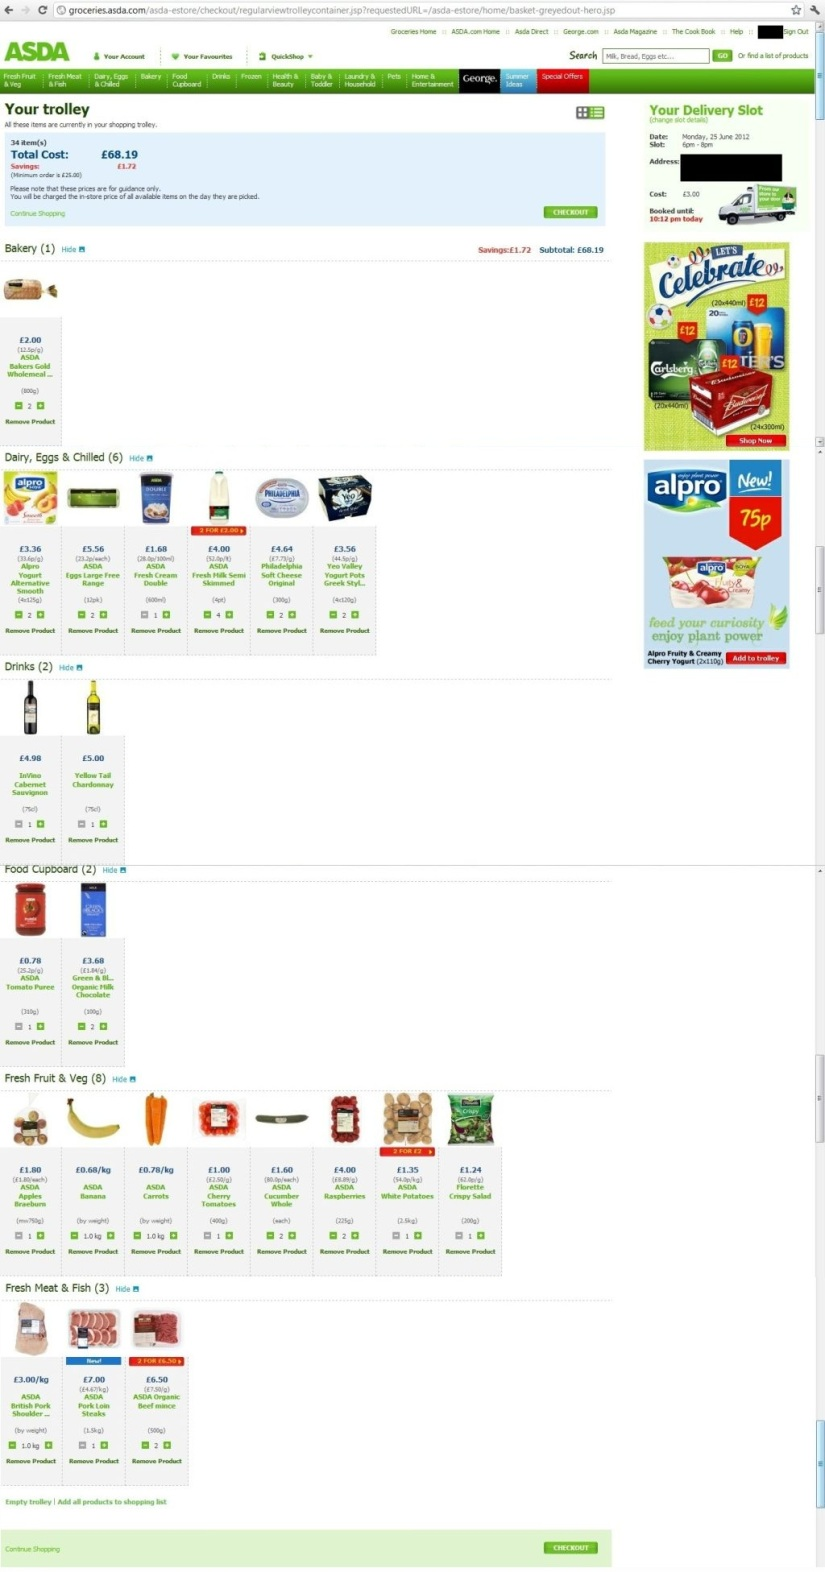 example online shopping basket from asda